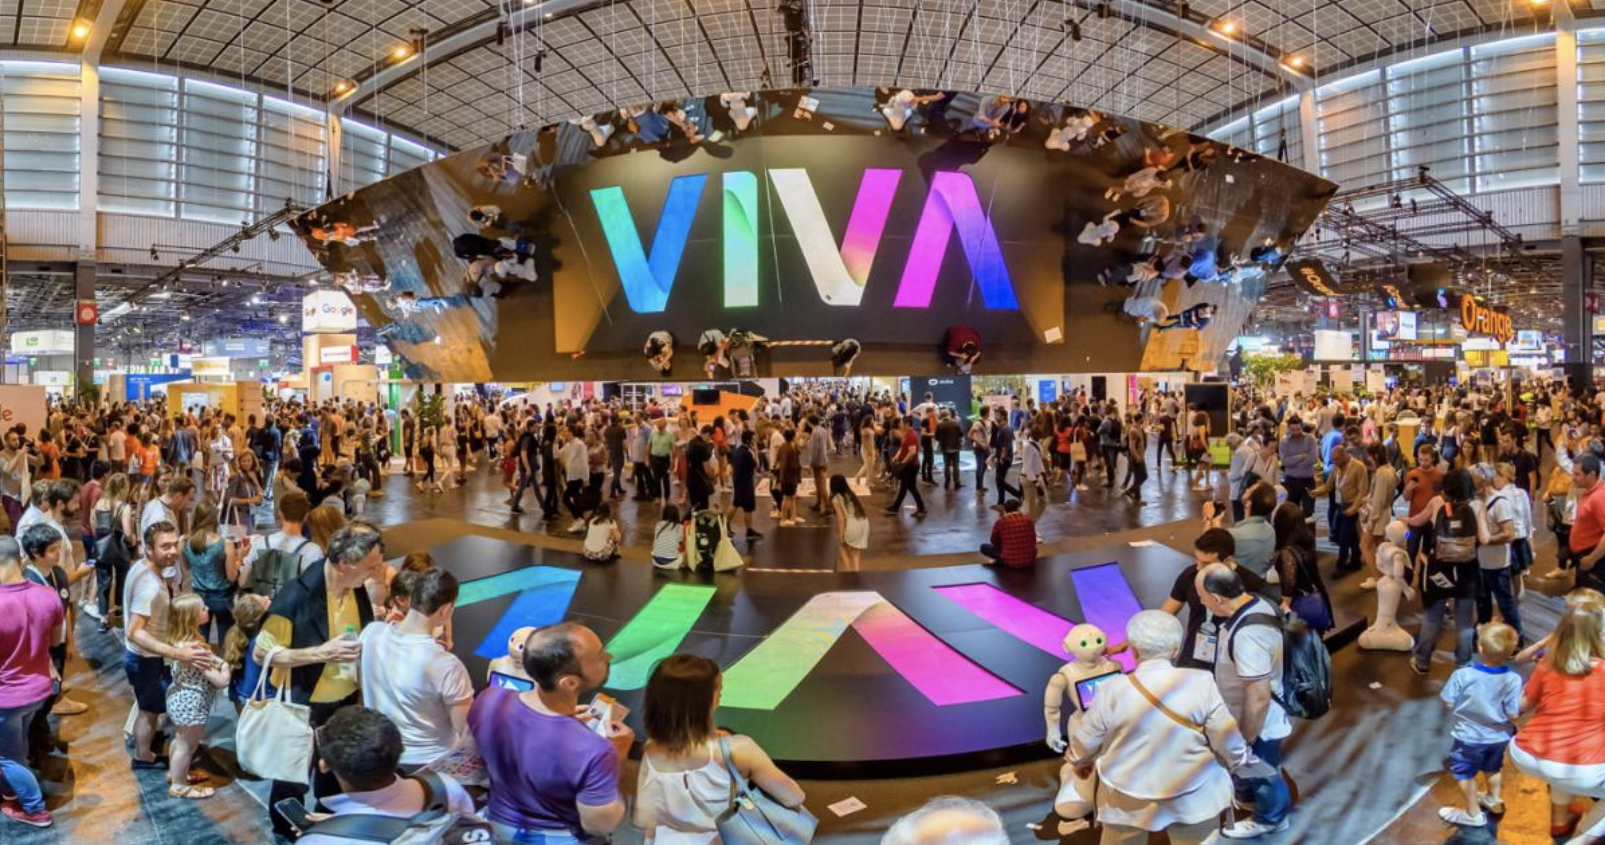 Mel's Talk at VivaTech 2019 - If you were online this past week, you must have seen information about Viva Tech! This big exhibition is focused on innovation and takes place each year in Paris since 2016.This year, the exhibition took place from 16th to 18th of May. A true paradise for entrepreneurs who are looking for inspiration and advice!As you can imagine, it was impossible for us to miss this huge event. We met a lot of amazing entrepreneurs such as Melanie Perkins co-founder of Canva, or Jack Ma and a great bunch of French startups!Join us to learn more about VivaTech 2019.Don't hesitate to follow us on Instagram and YouTube!